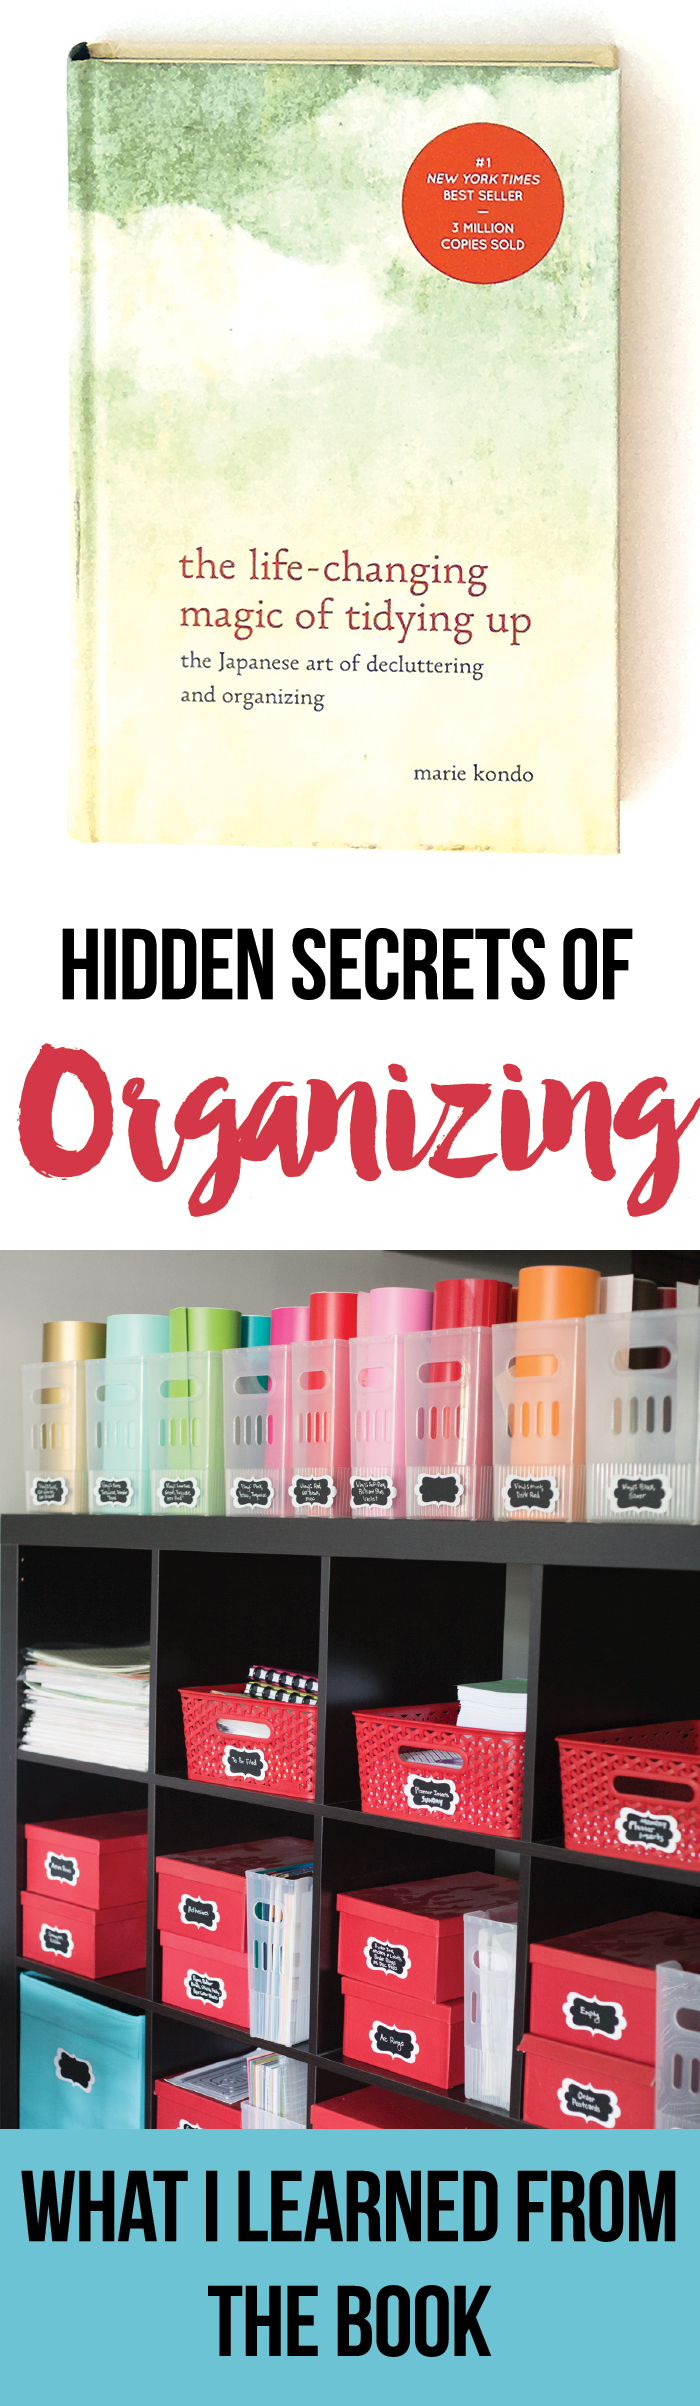 What I learned about organizing and decluttering from Marie Kondo in the LIfe Changing Magic of Tidying Up. Even though I didn't agree completely with everything in the book, I'm definitely going to implement many aspects of the KonMari method.